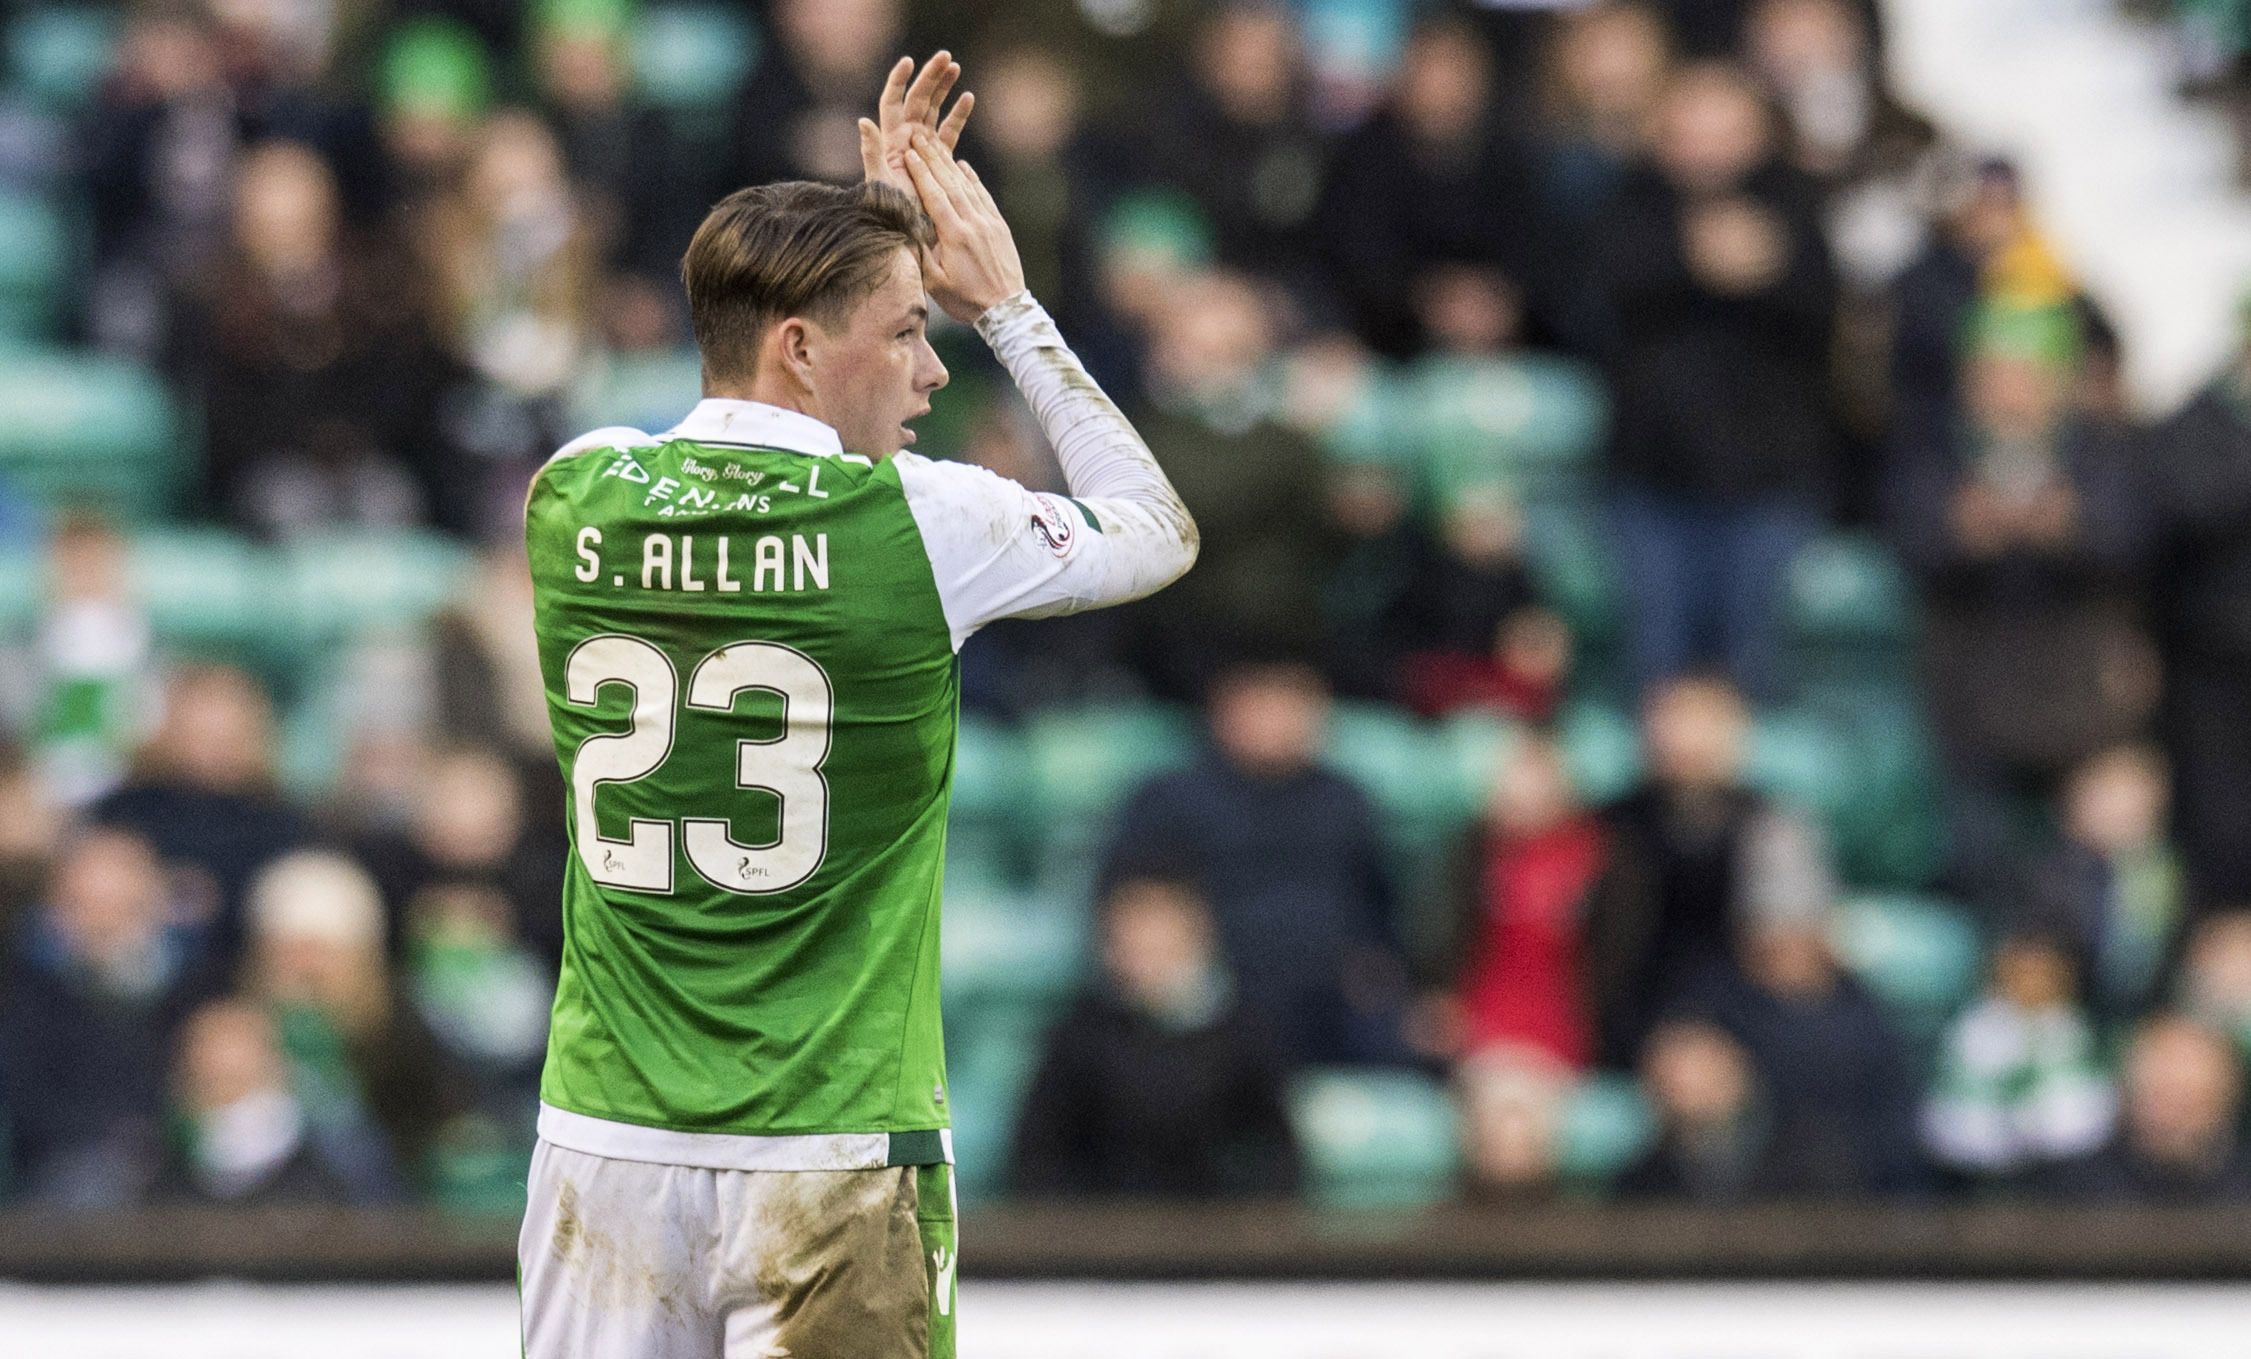 Scott Allan applauds the Hibs fans as he leaves the pitch on Saturday.